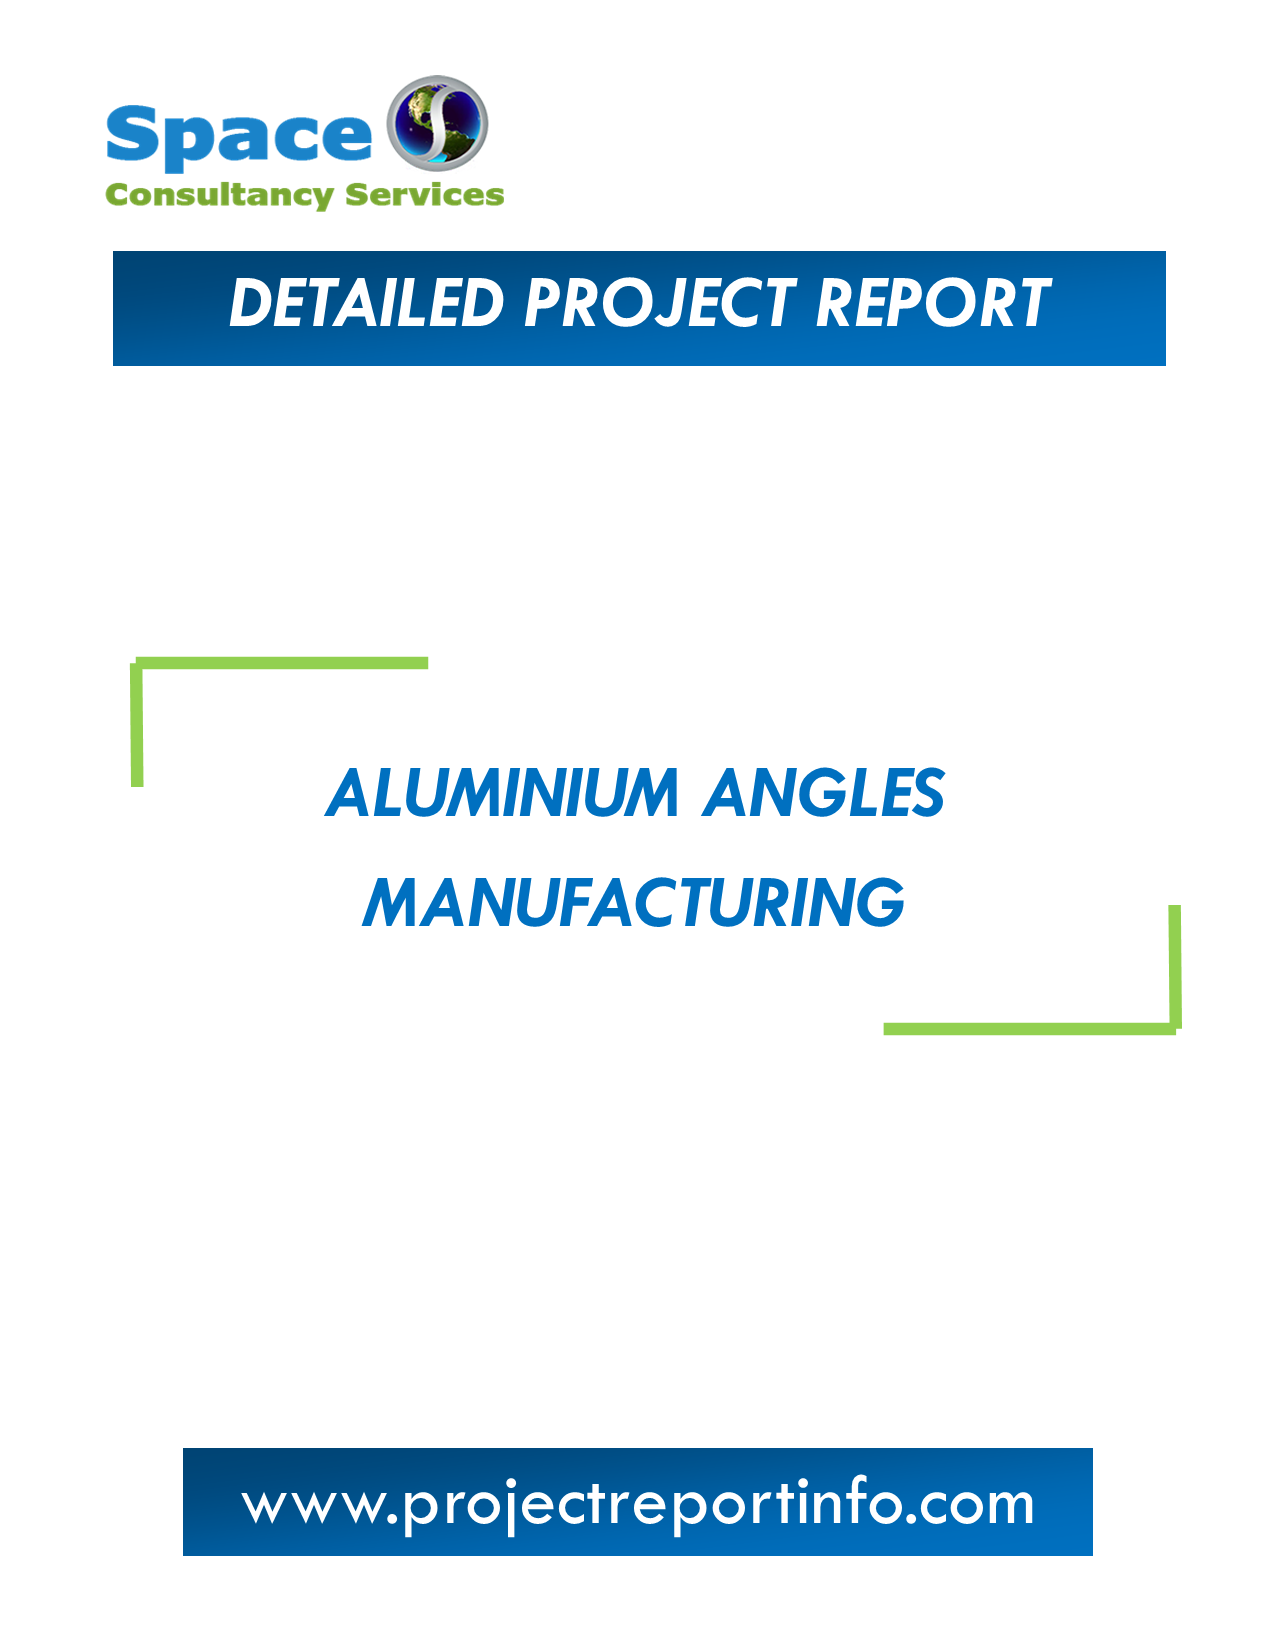 Project Report on Aluminium Angles Manufacturing